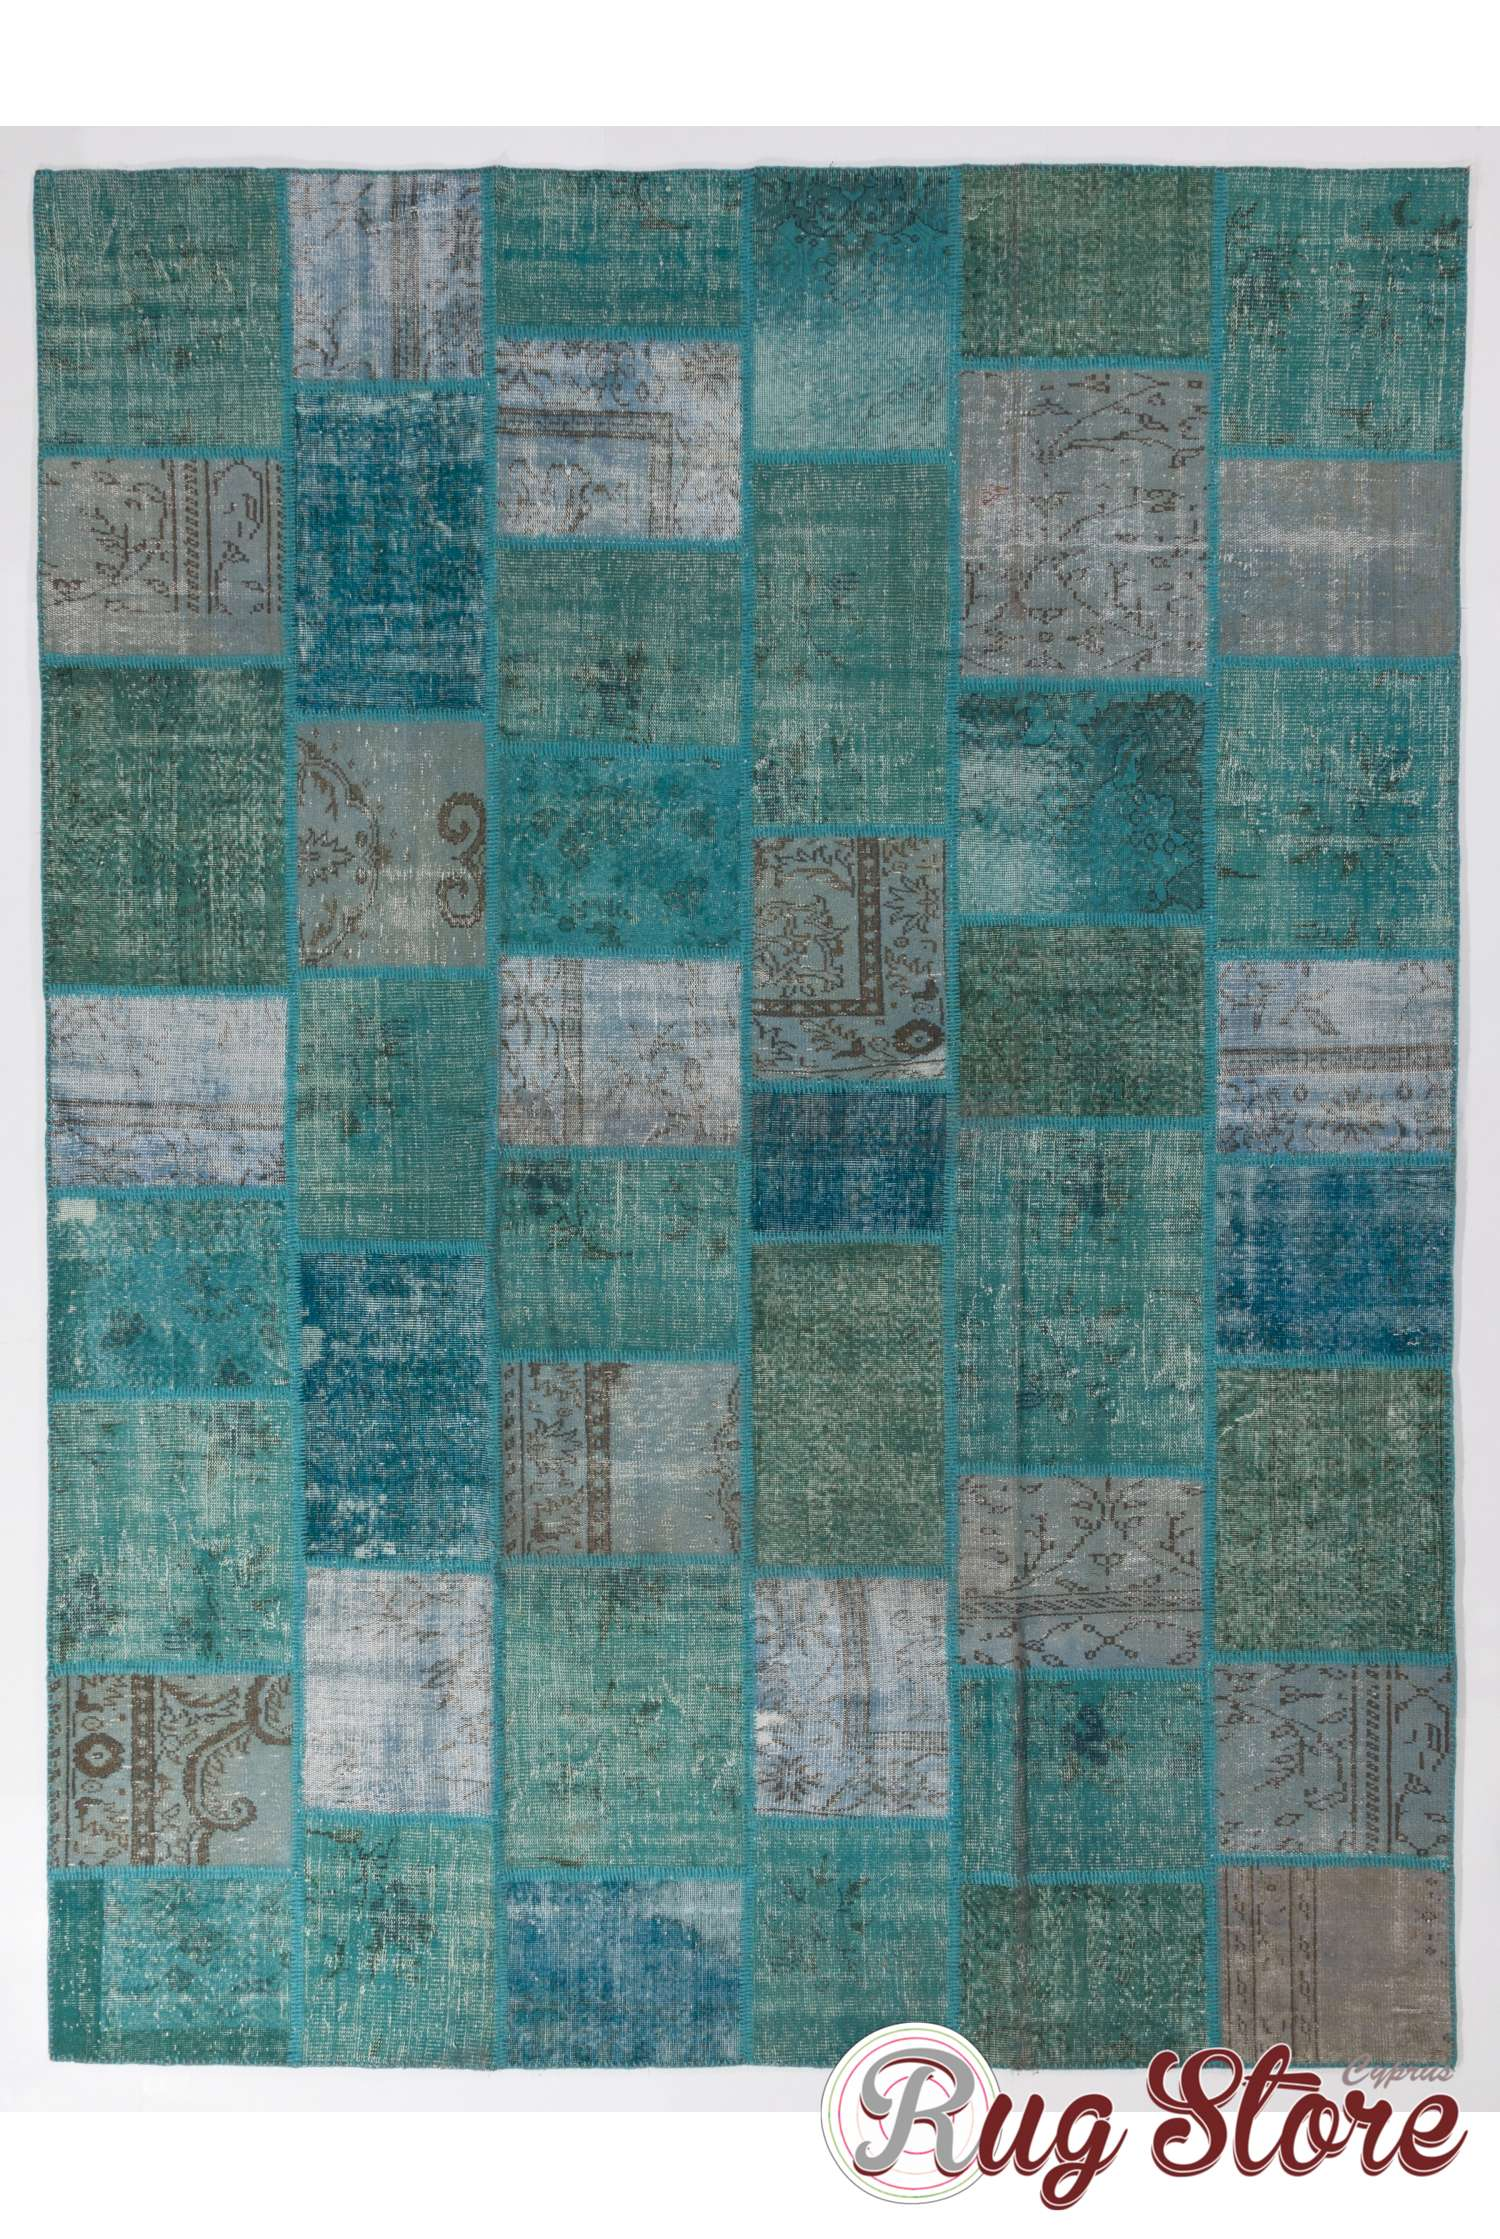 9 X 12 275x366 Cm Turquoise Teal And Light Sky Blue Vintage Patchwork Rug